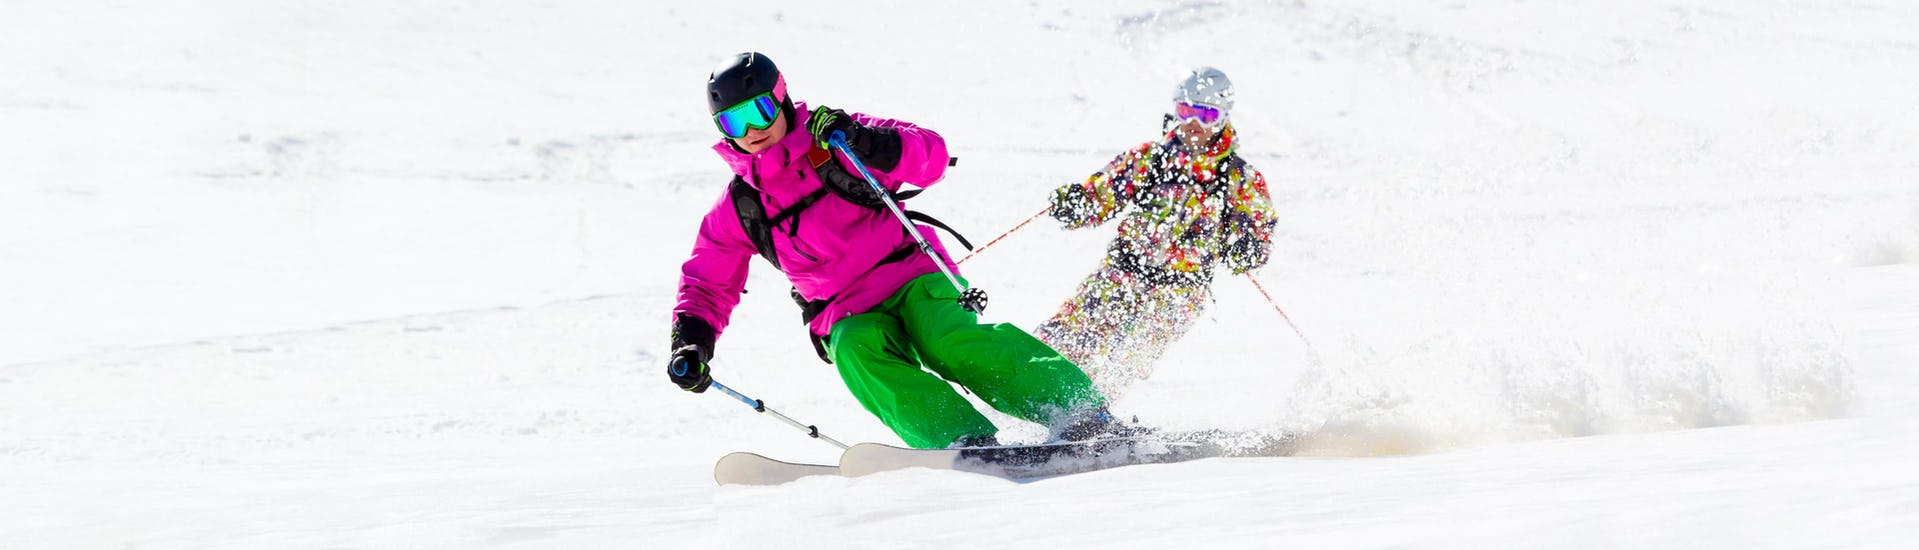 Ski Instructor Private - All Levels